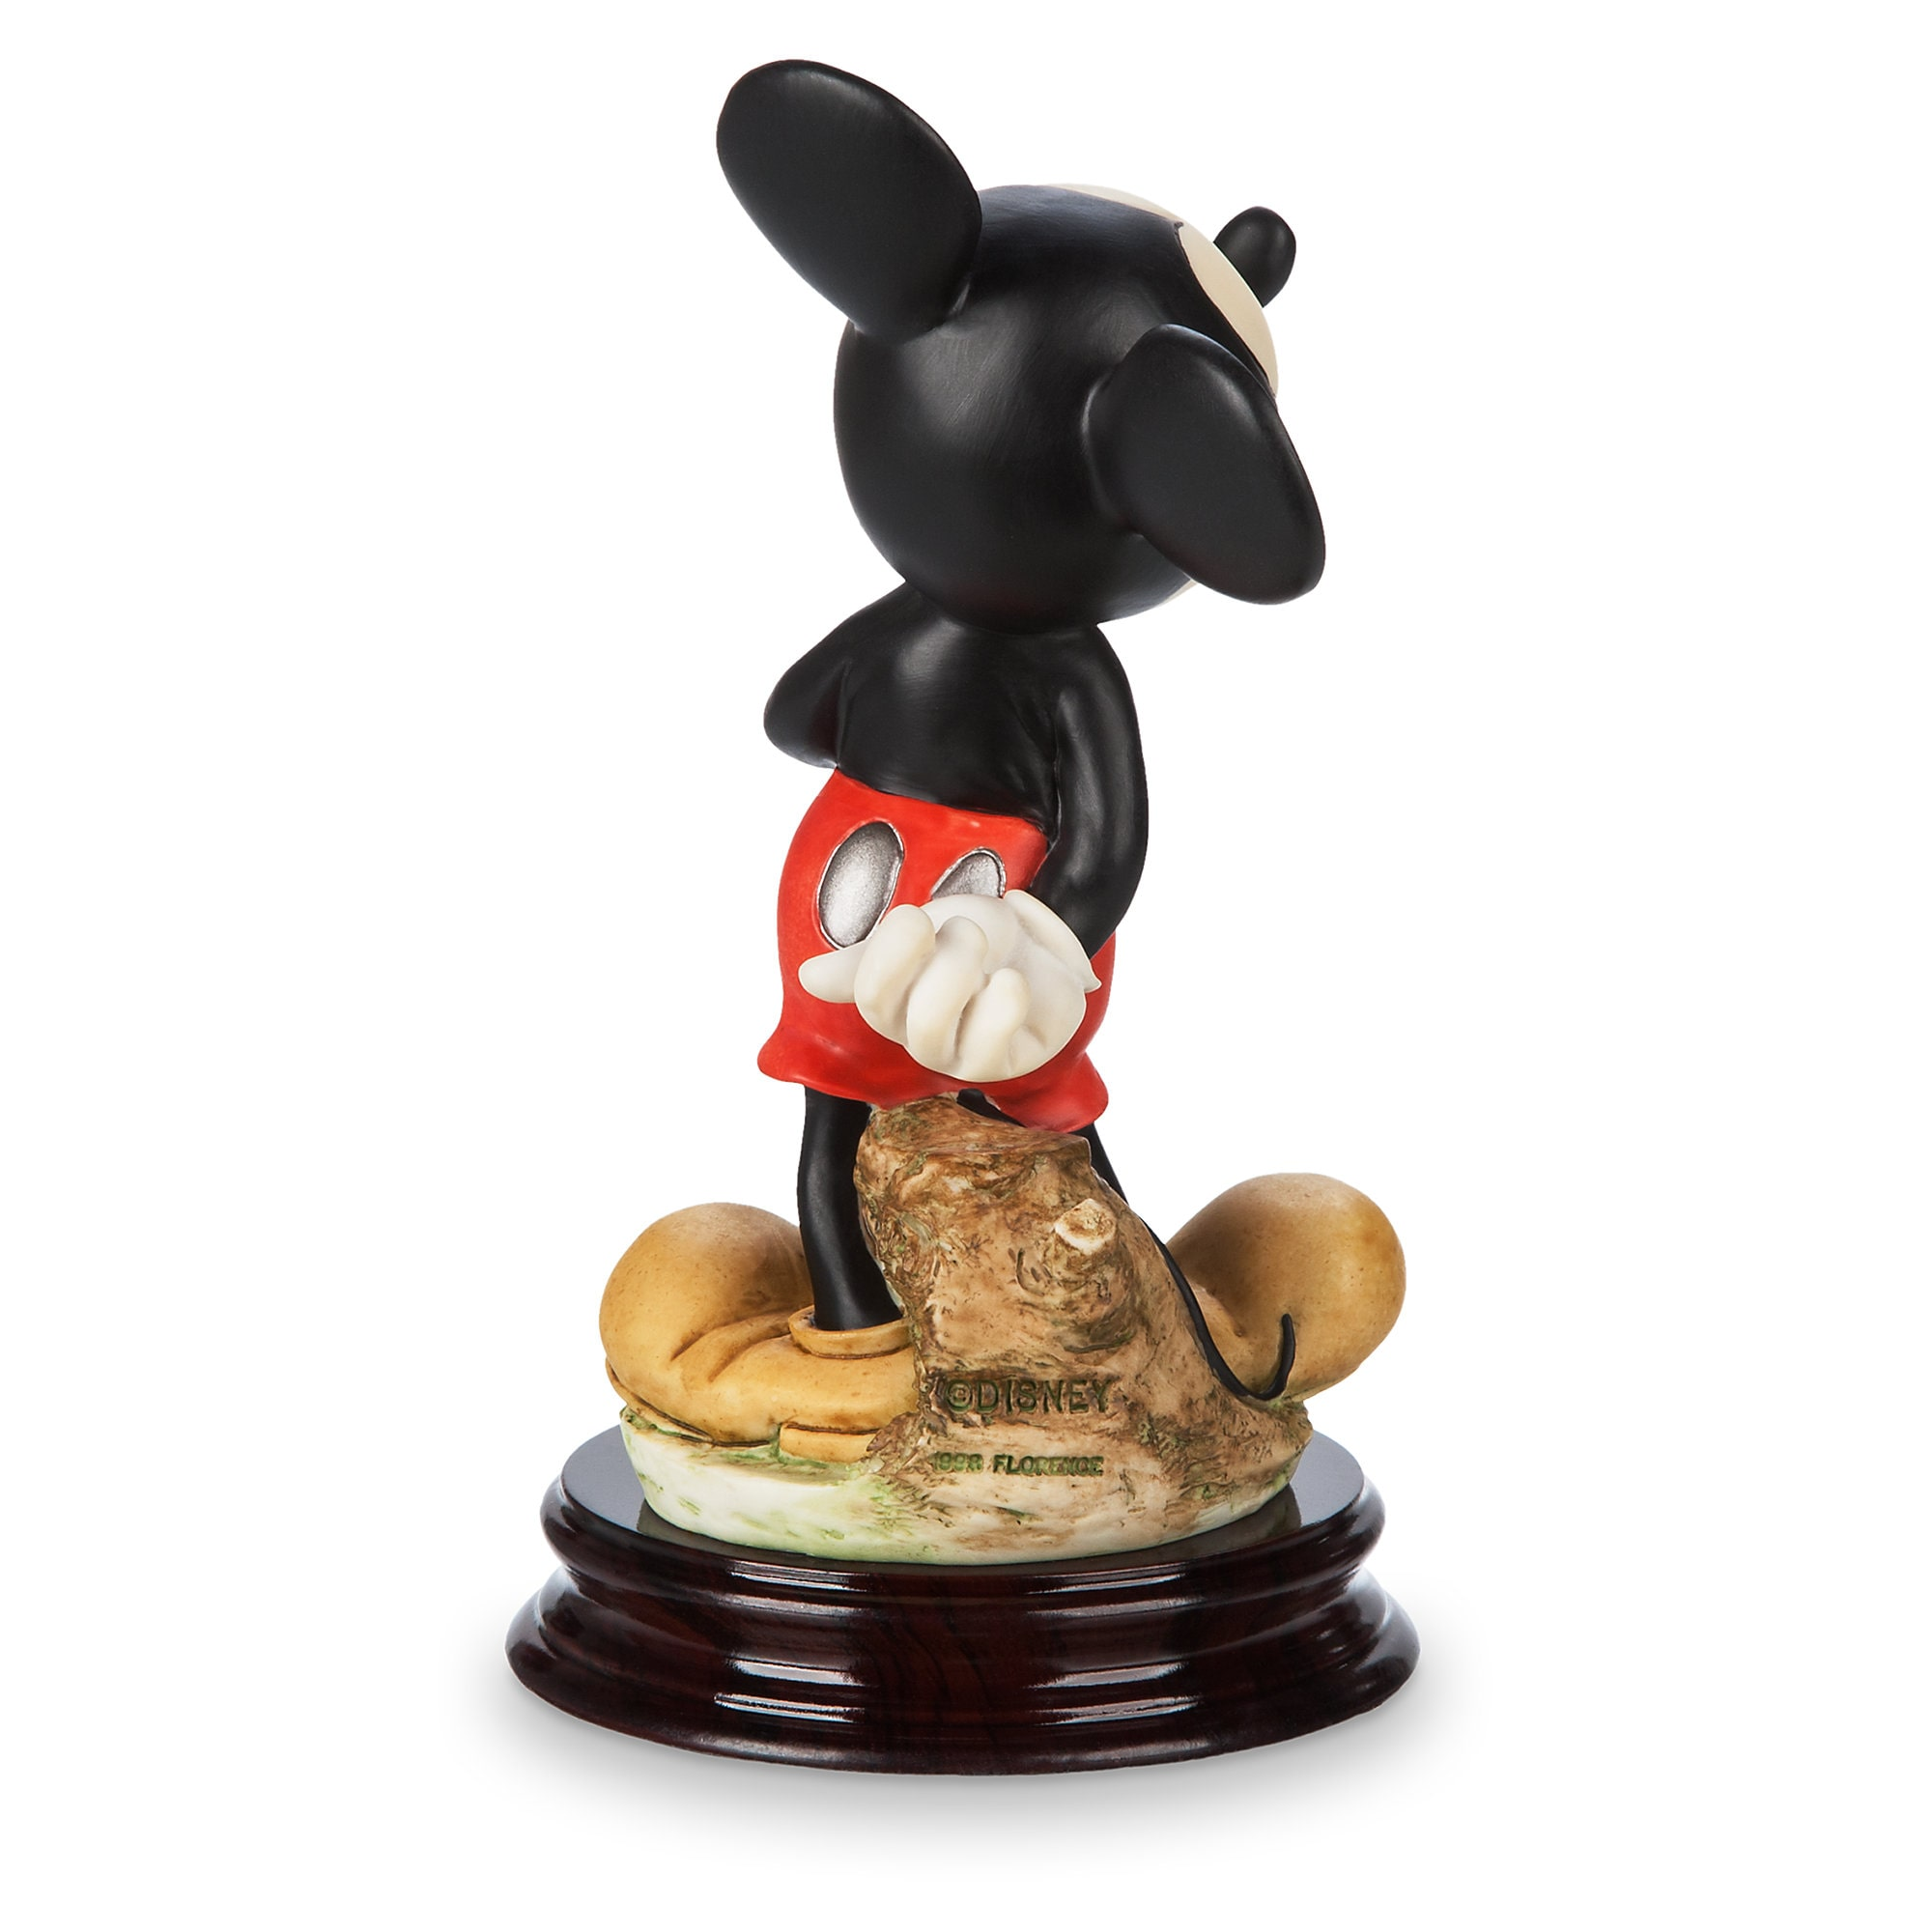 Mickey Mouse Figure by Giuseppe Armani